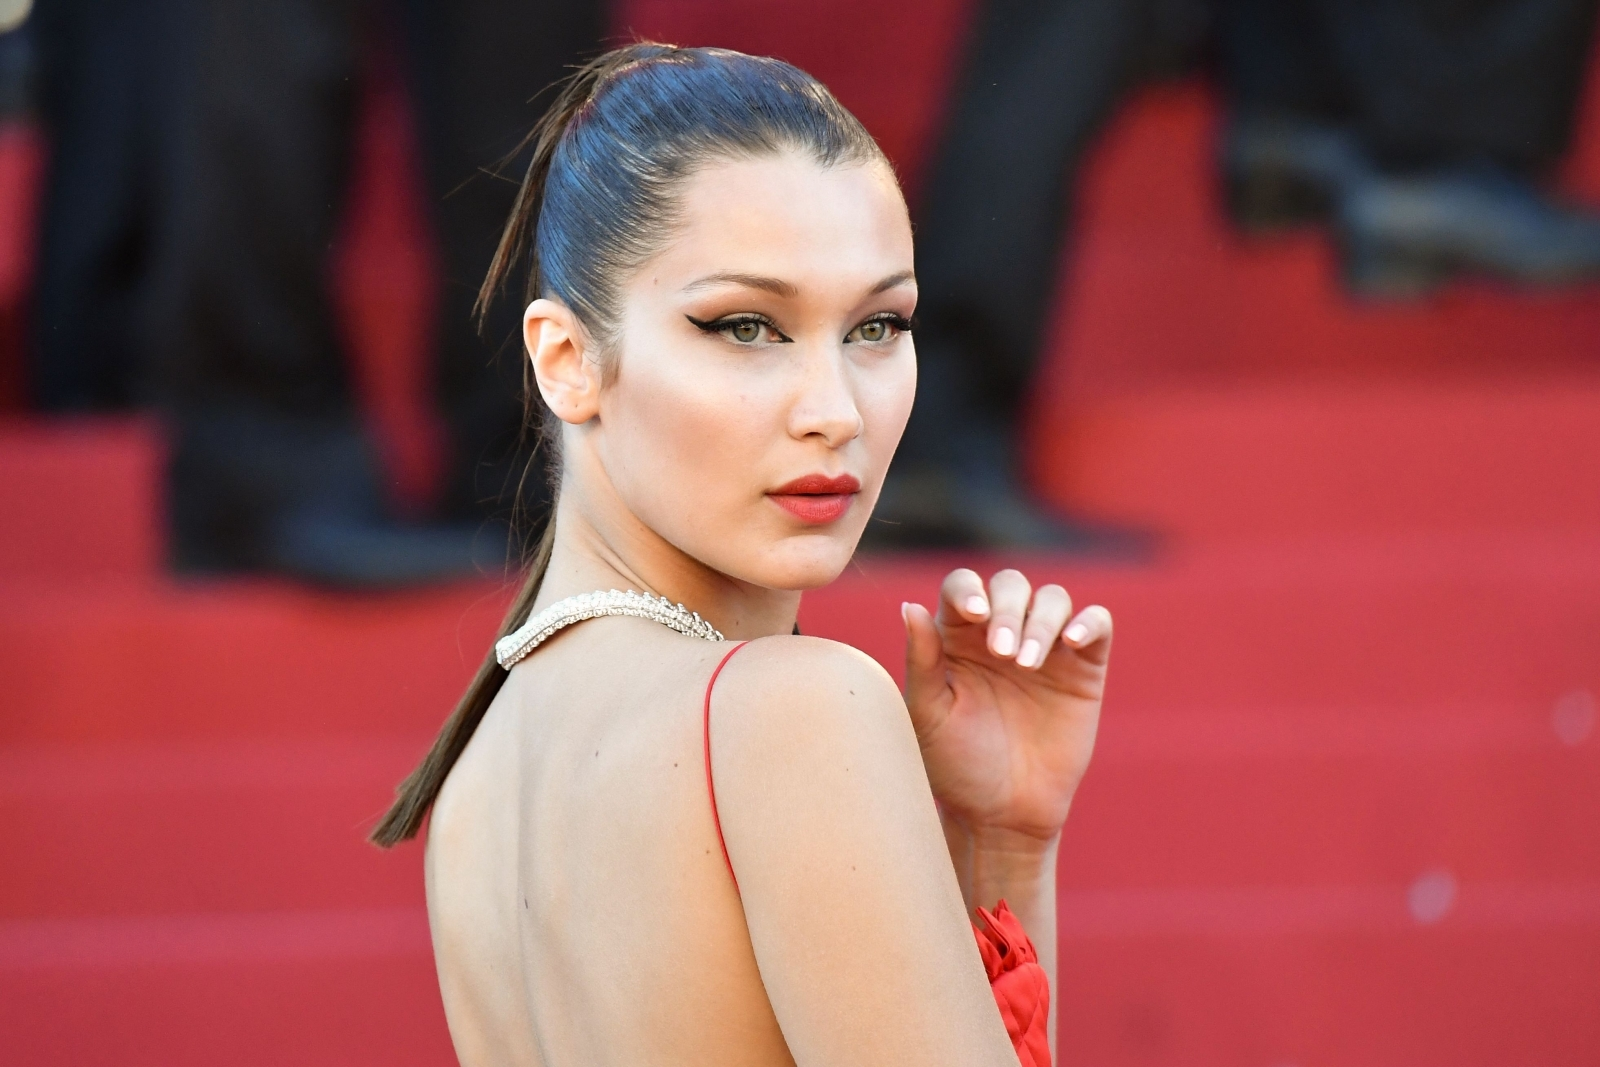 Bella Hadid 'crushing on Drake' as her heartbreak over The Weeknd dating Selena Gomez is revealed